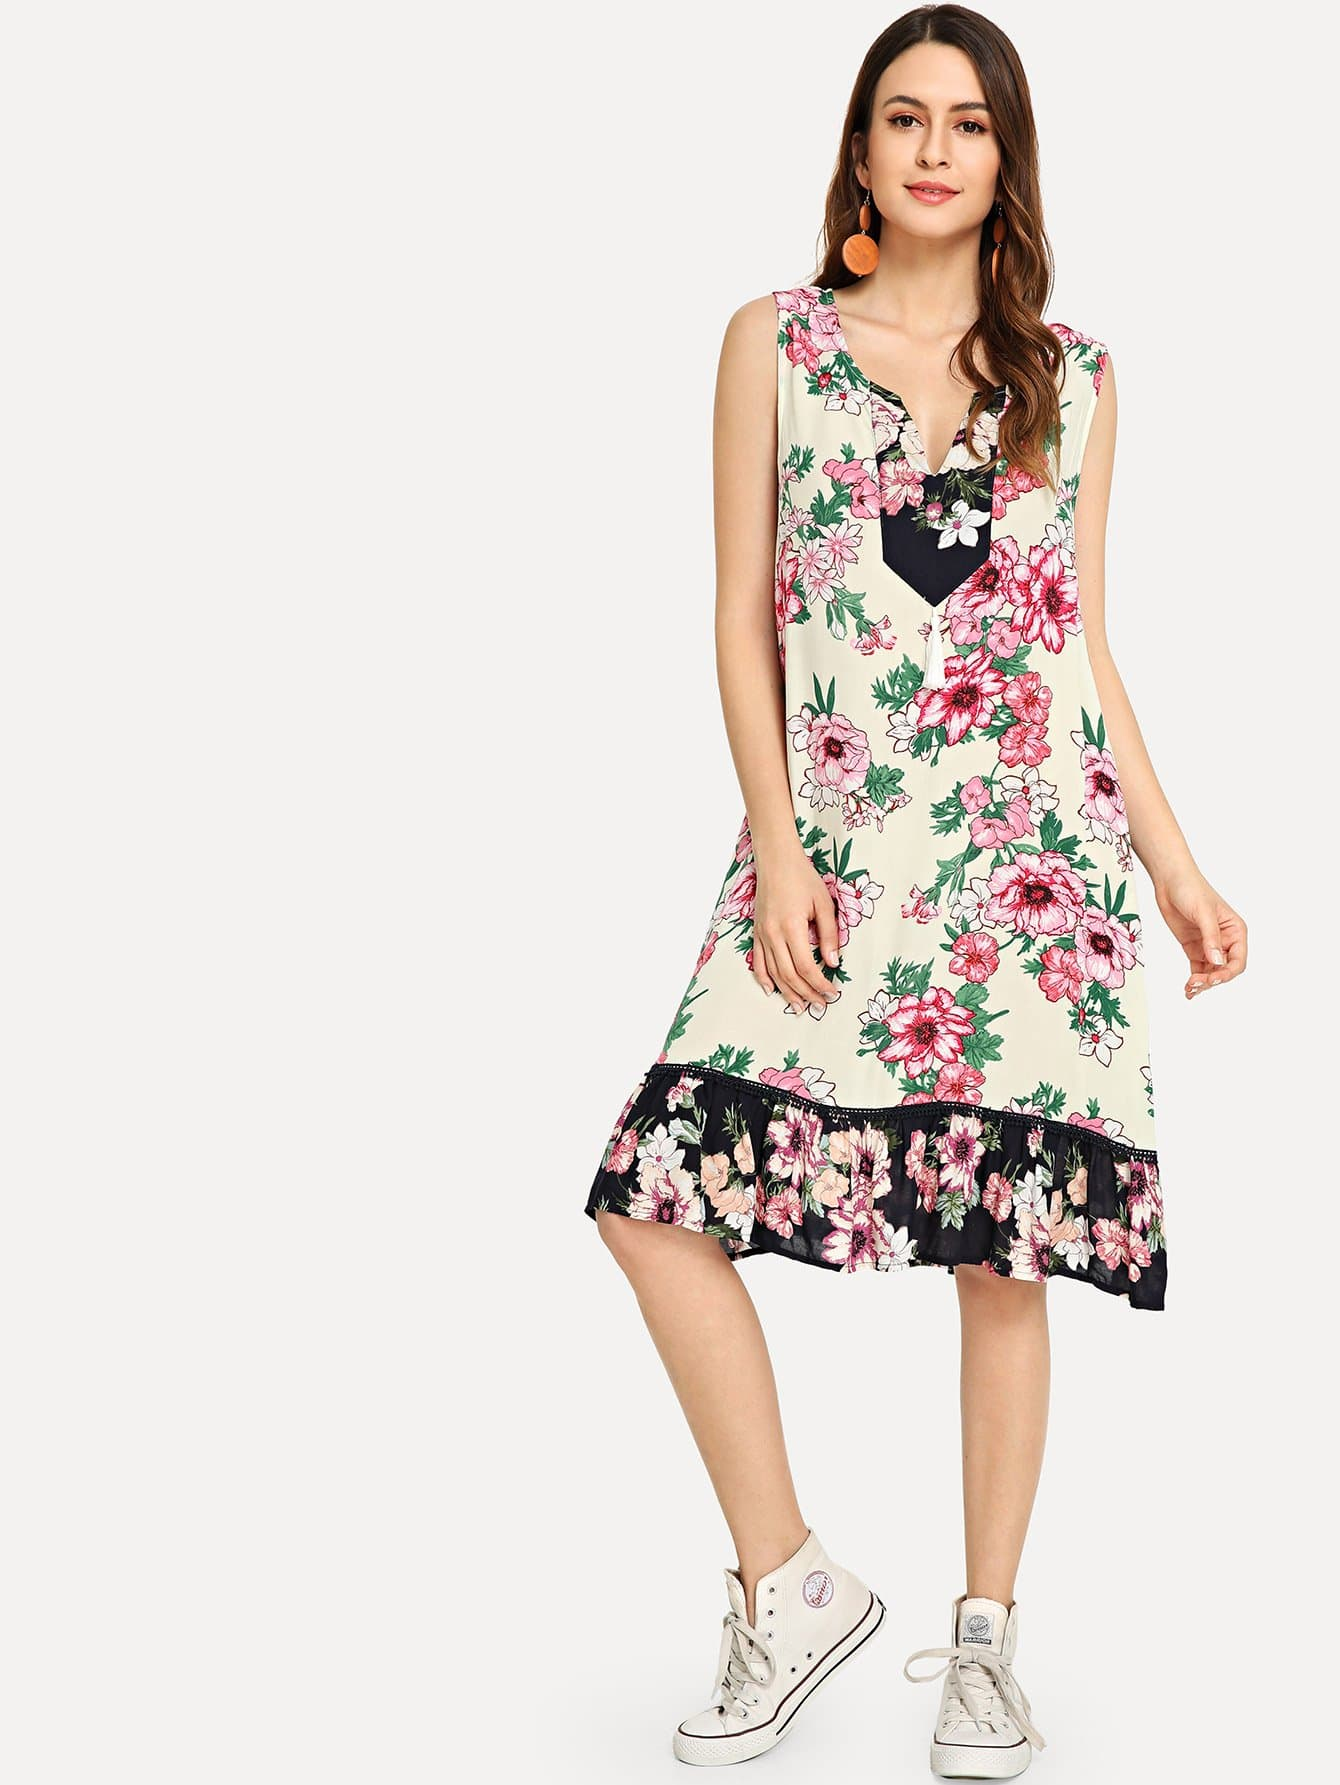 Tassel Detail Flower Print Ruffle Hem Dress, Jana, SheIn  - купить со скидкой